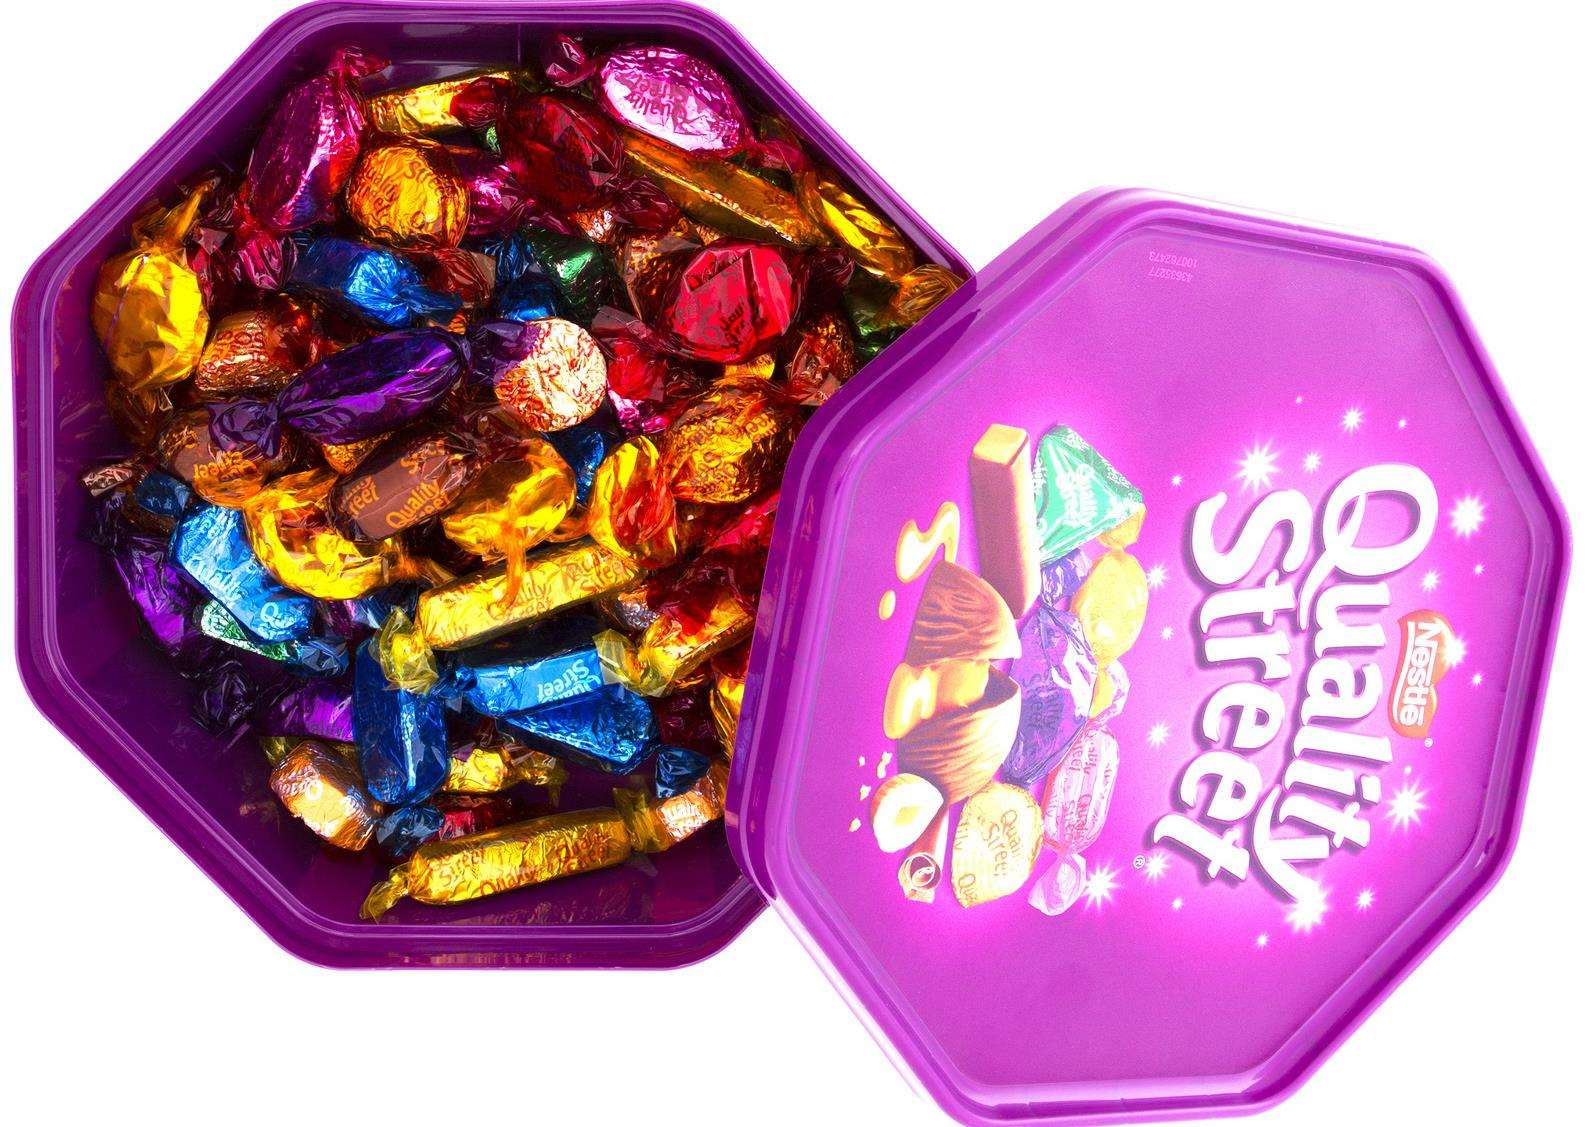 Choose your own Quality Street favourites this Christmas at John Lewis